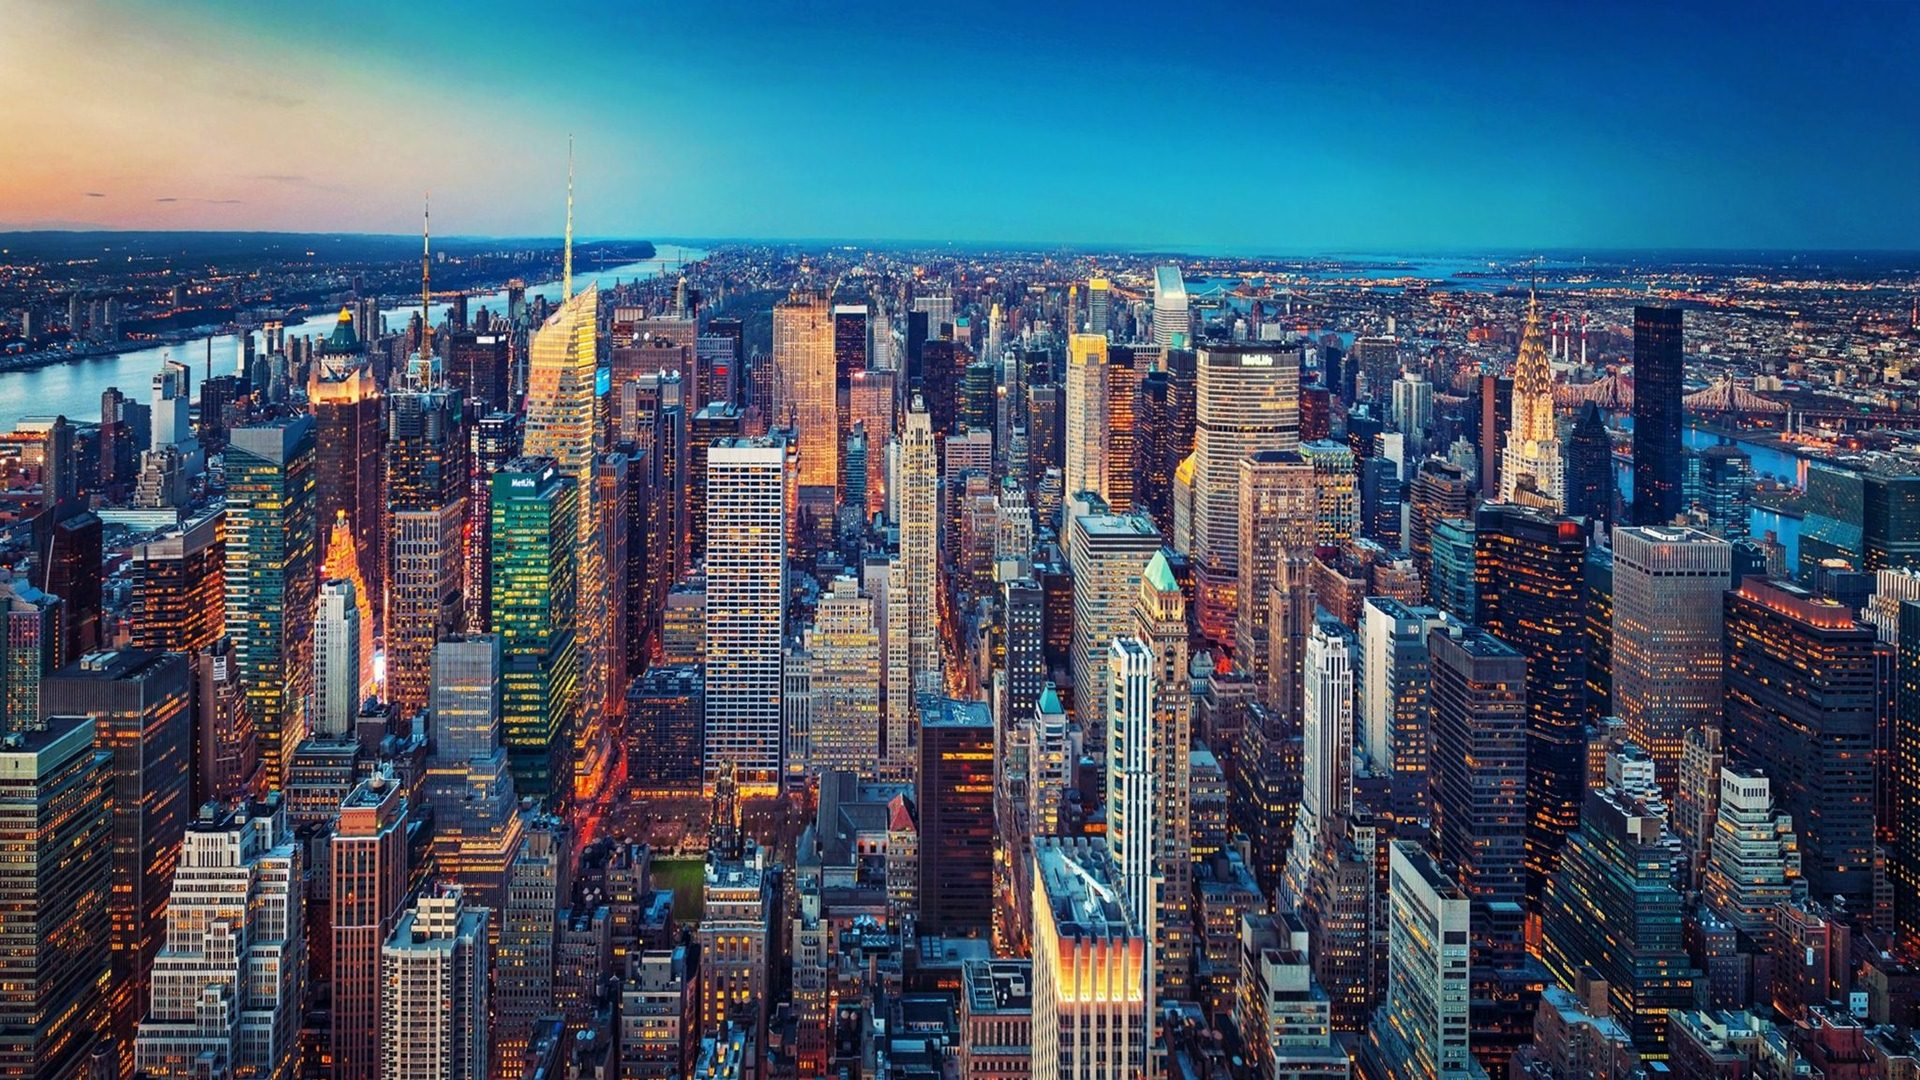 New york city background   SF Wallpaper 1920x1080